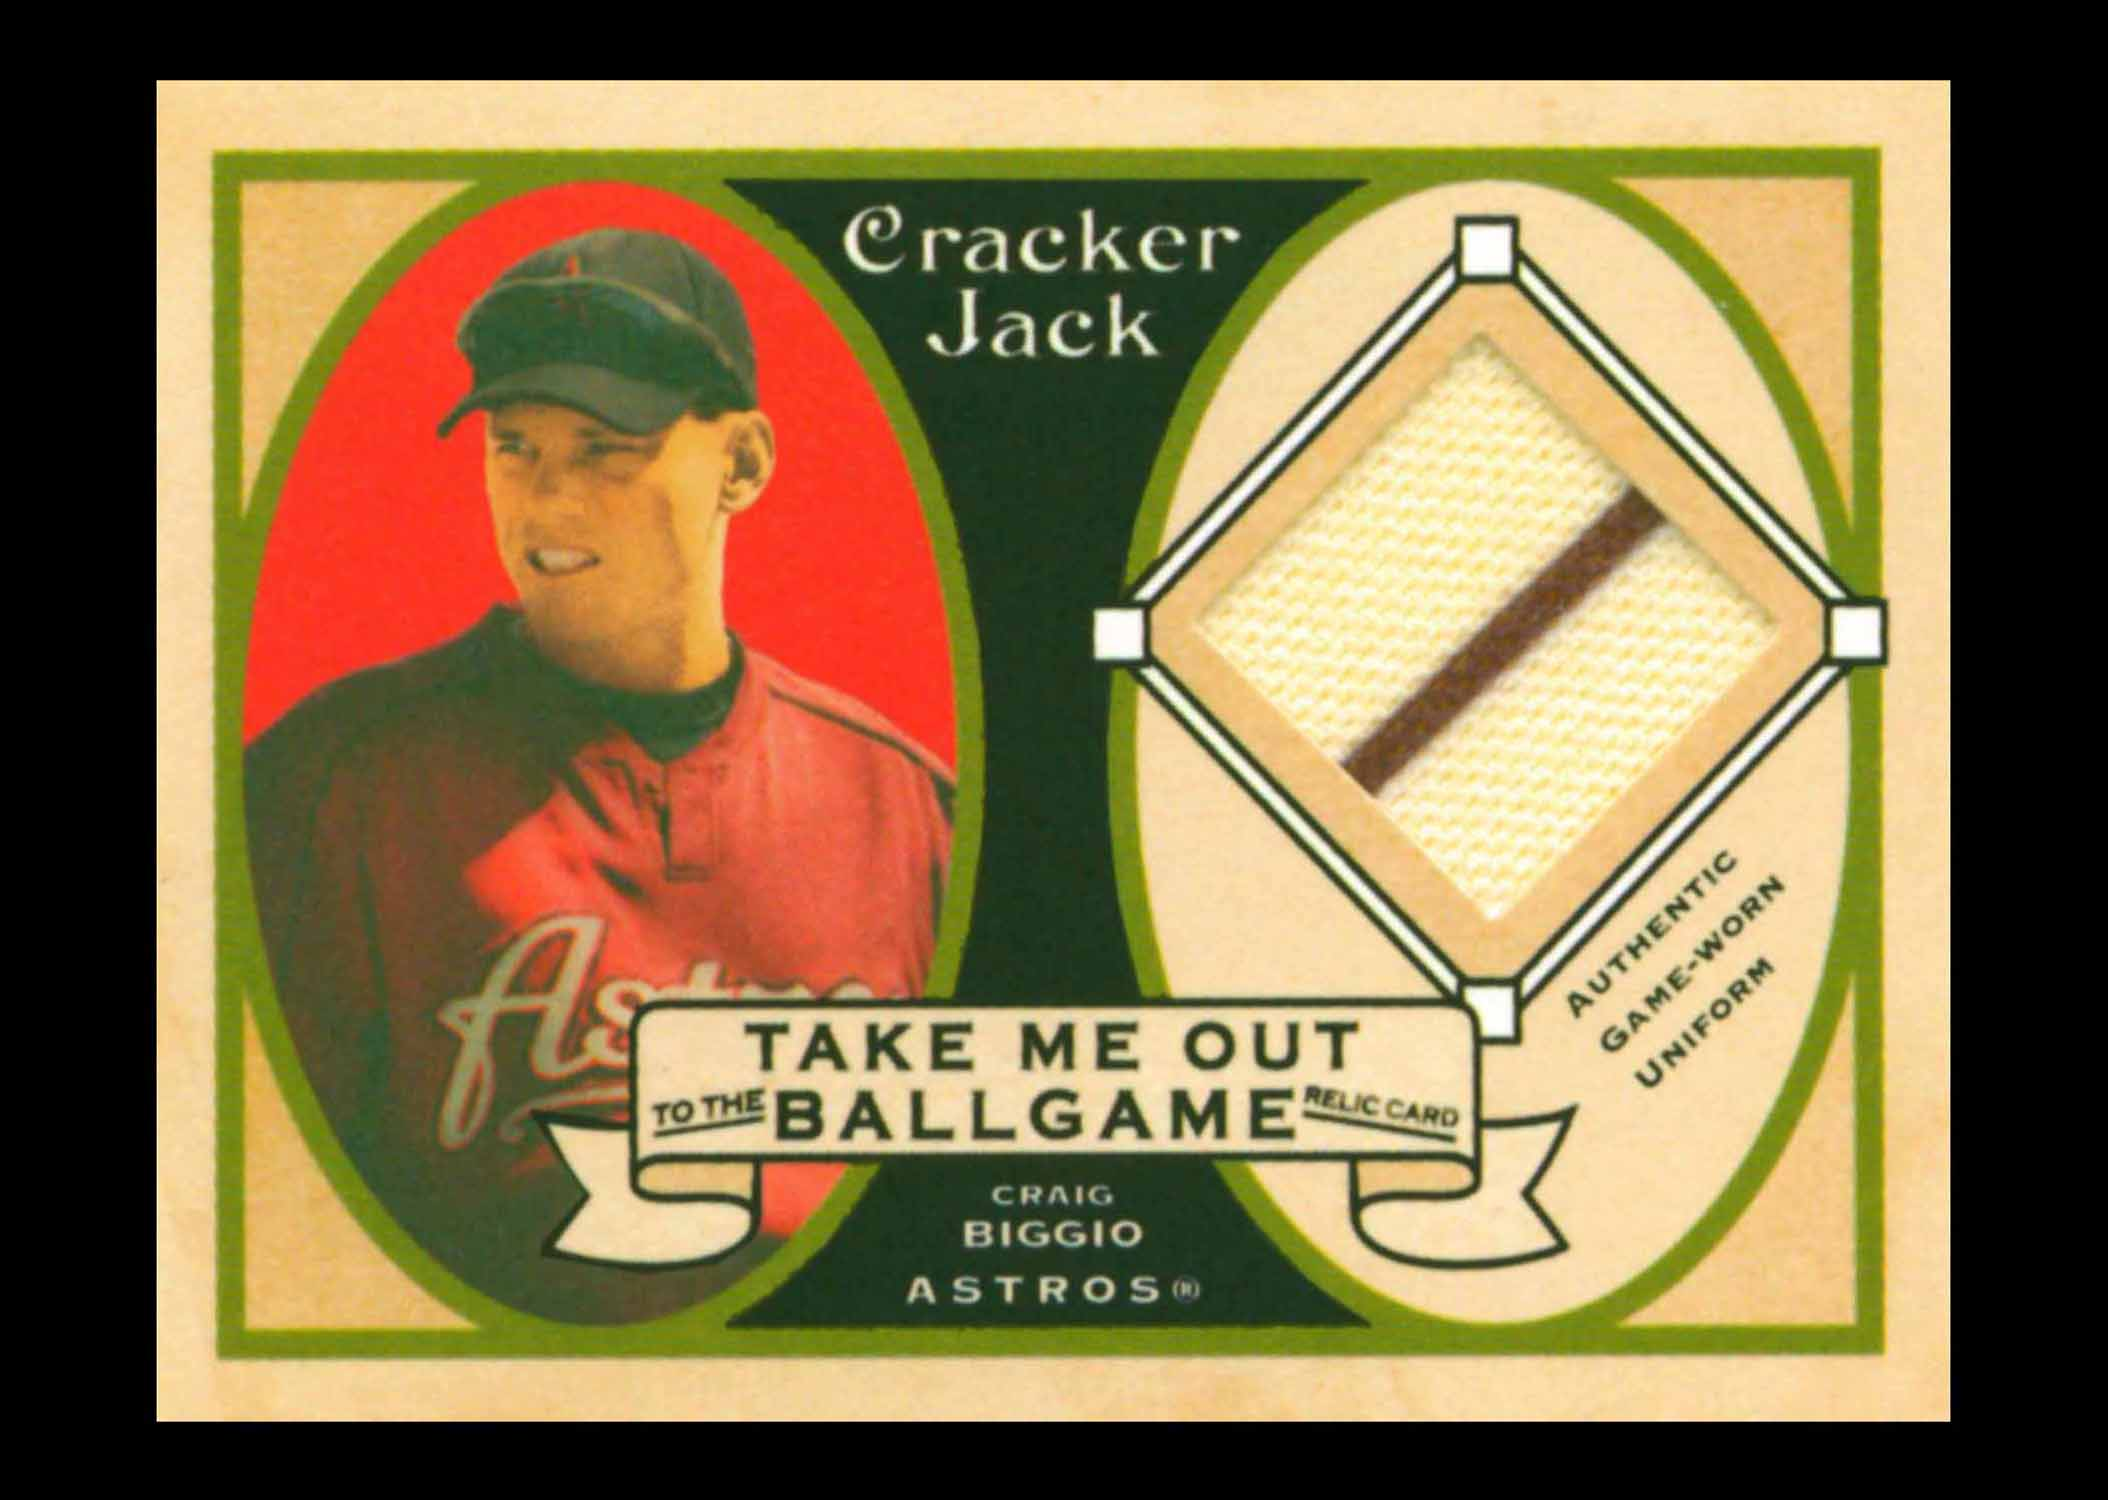 2005 Topps Cracker Jack Take Me Out to the Ballgame Mini Relics Uniform